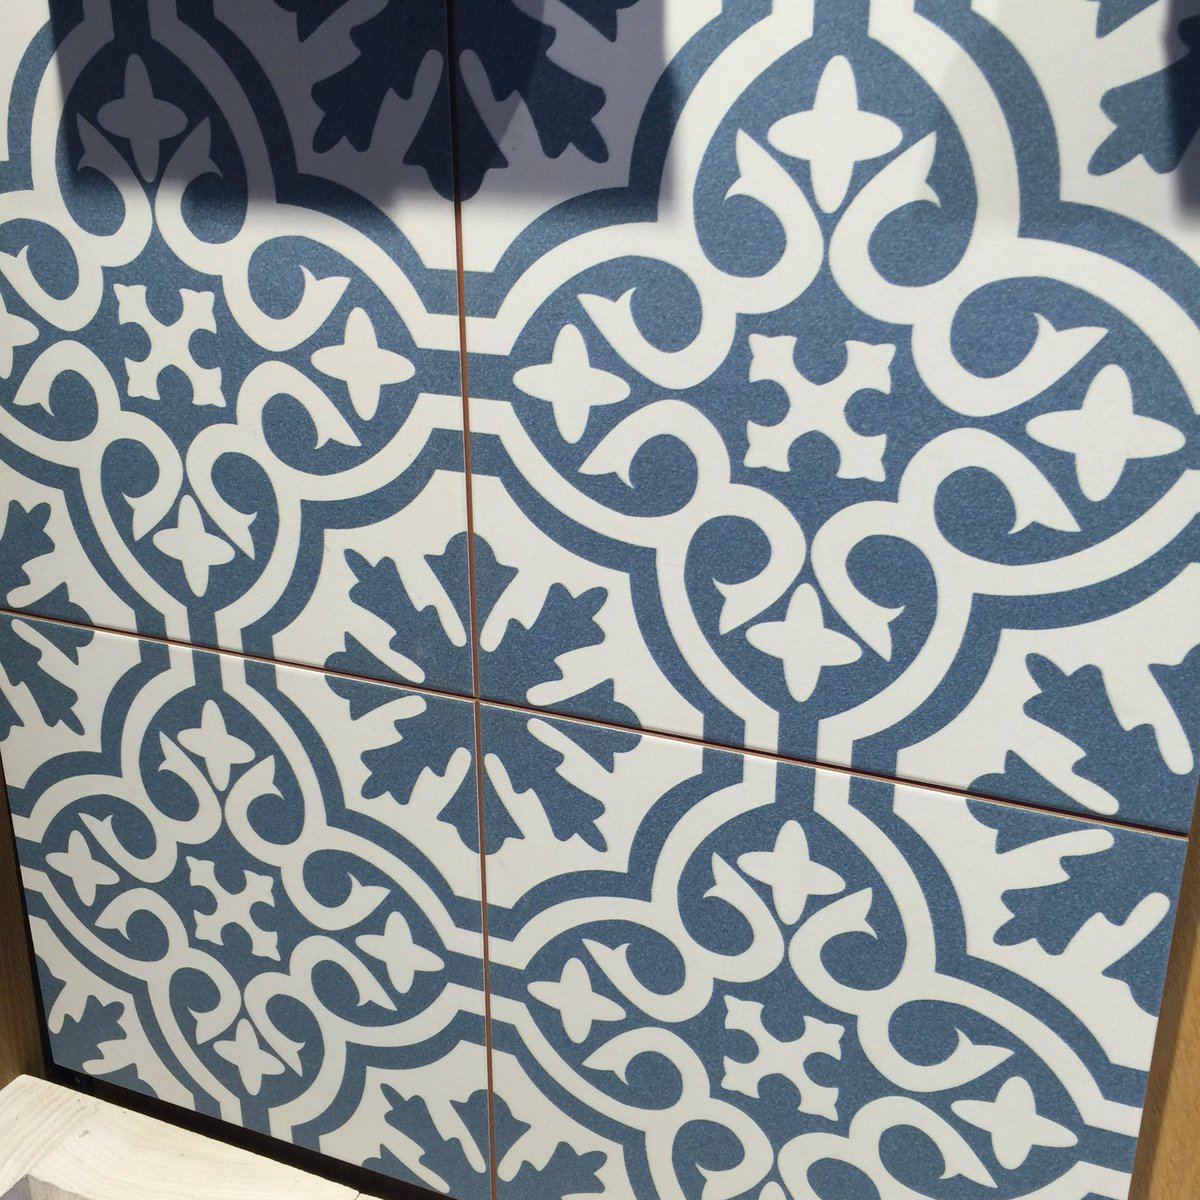 Andrew Dunning On Twitter Love The Refreshed Toppstiles Boutique Islington Upper Street Really Like Blue Berkeley Patterned Tile